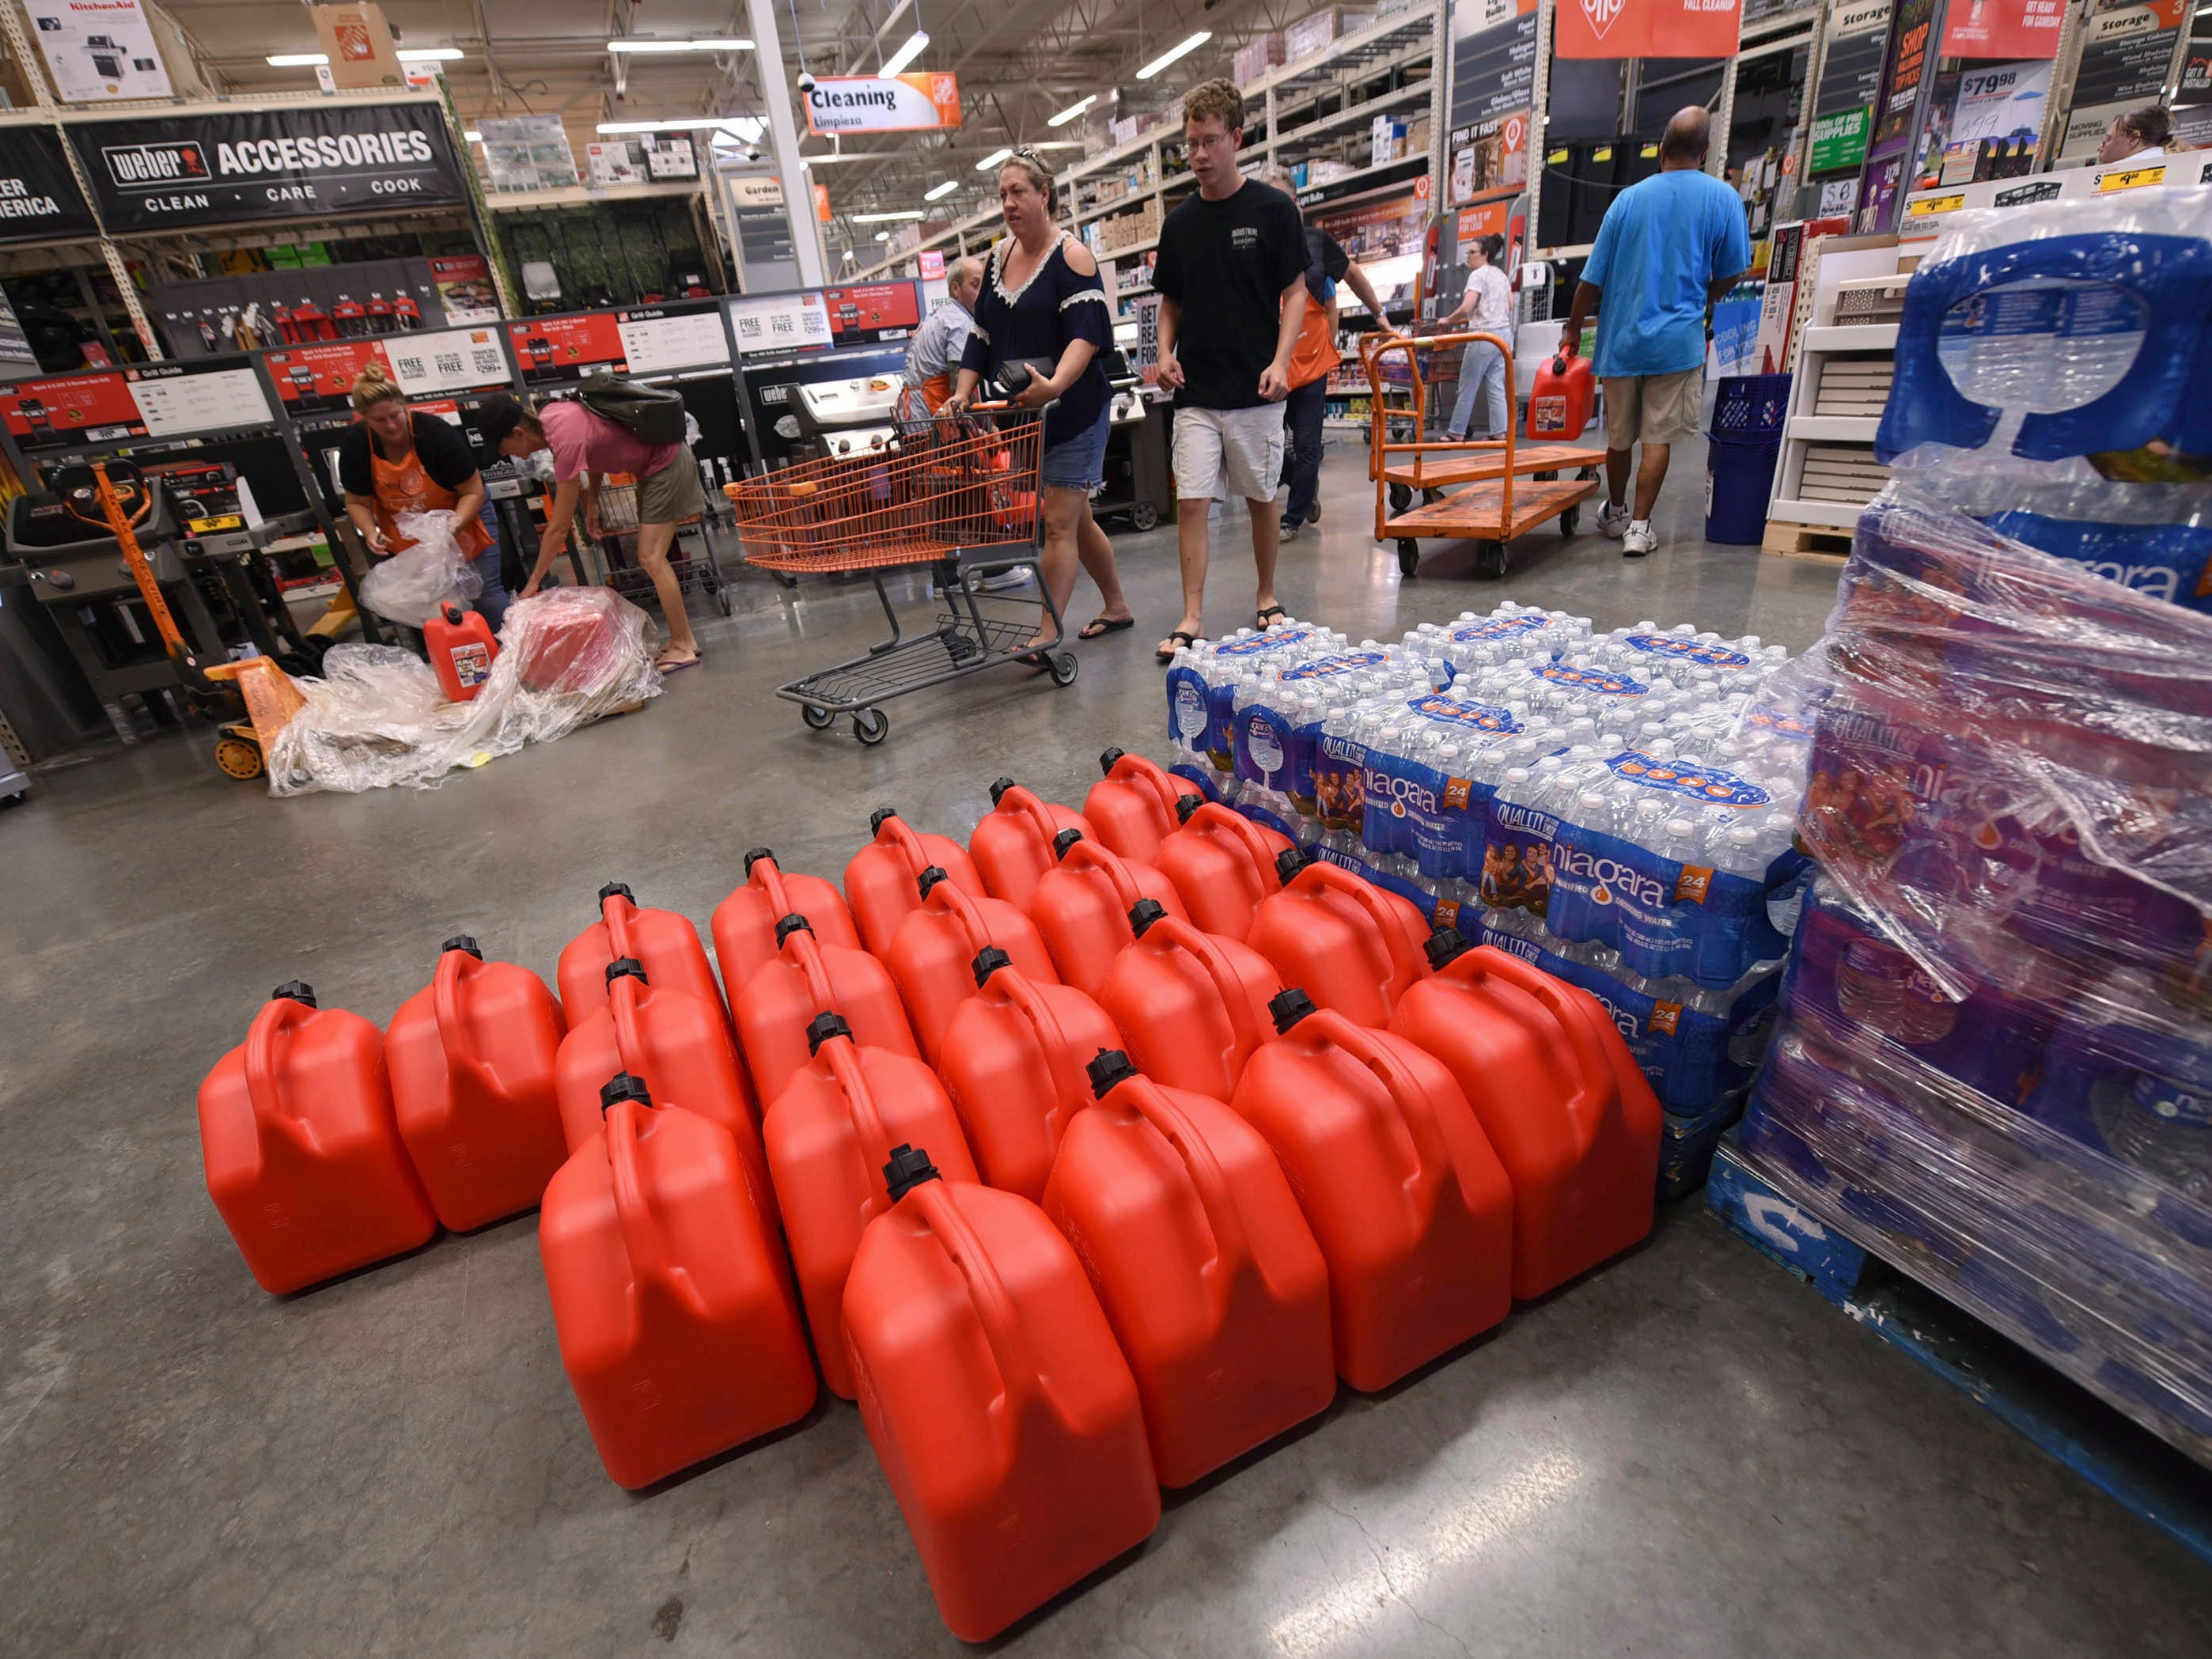 People buy supplies at The Home Depot on Monday, Sept. 10, 2018, in Wilmington, N.C.